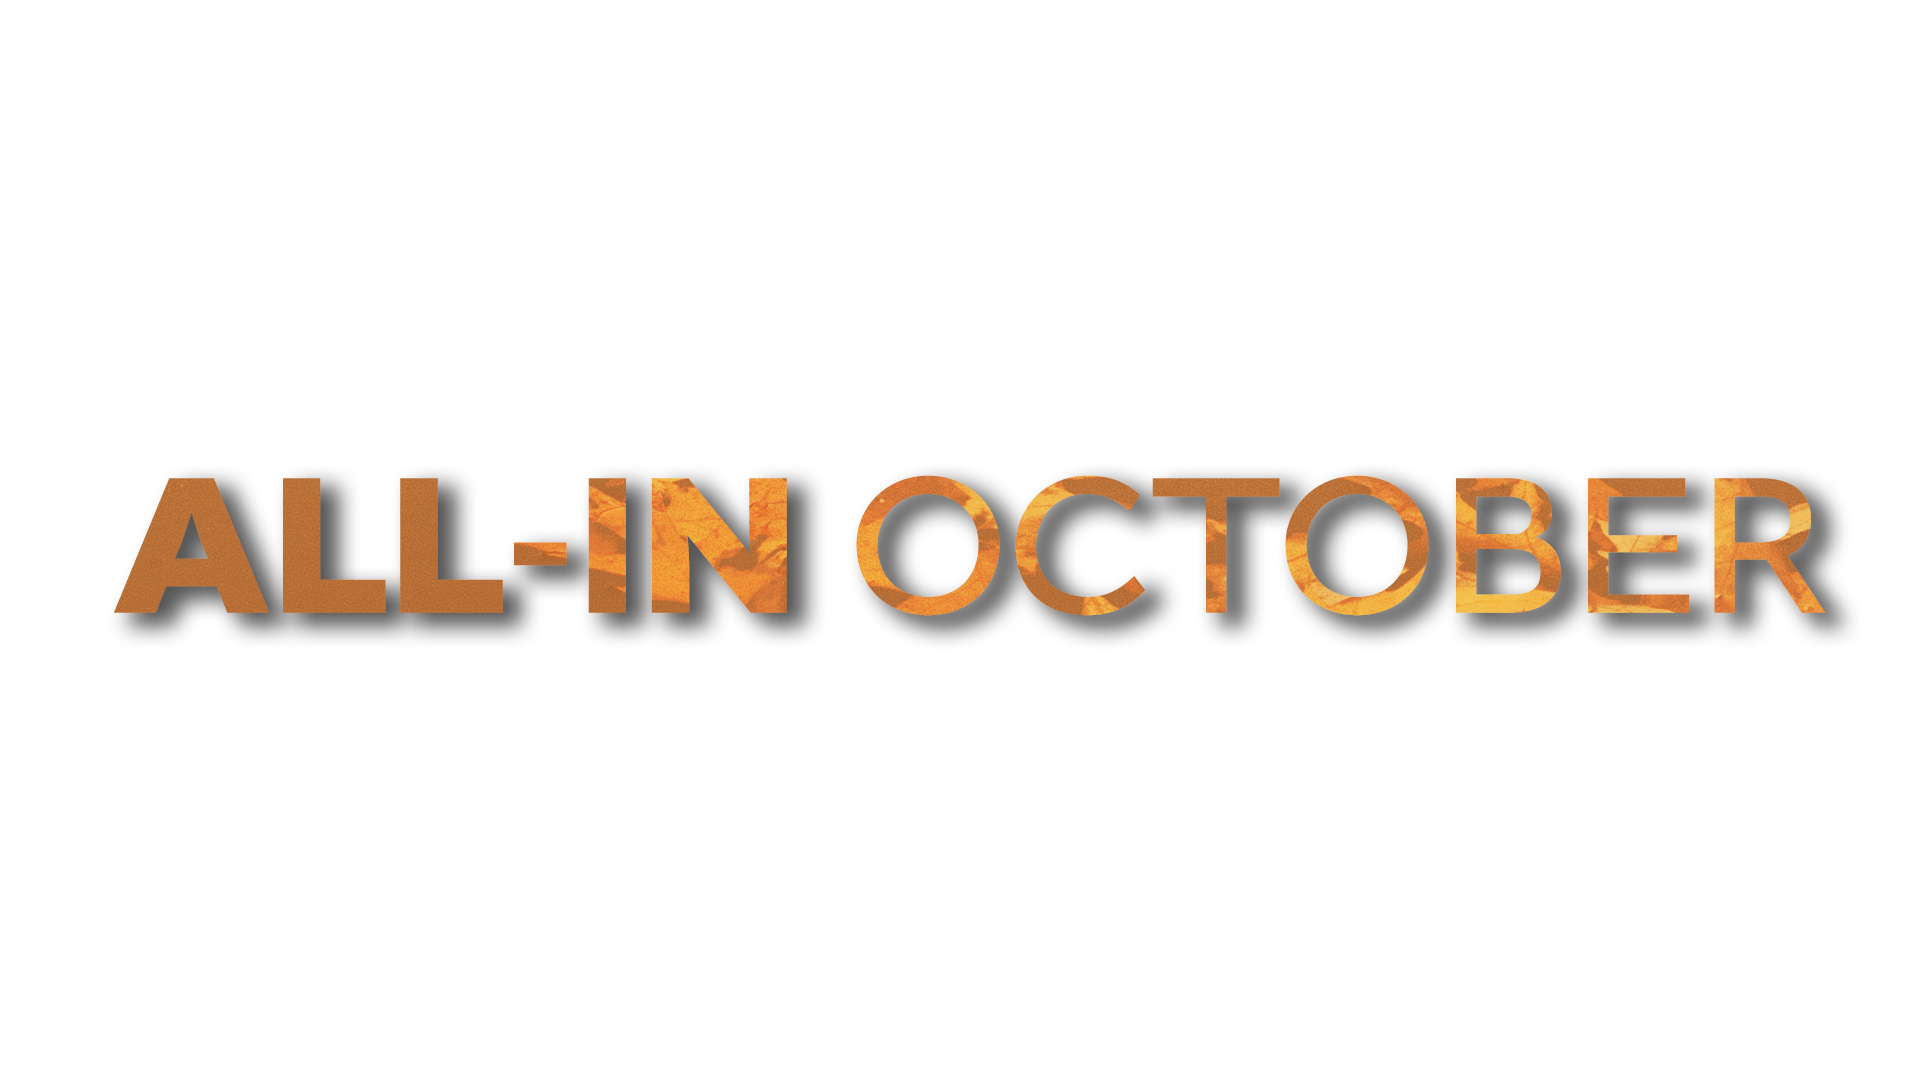 all-in-october-text-only